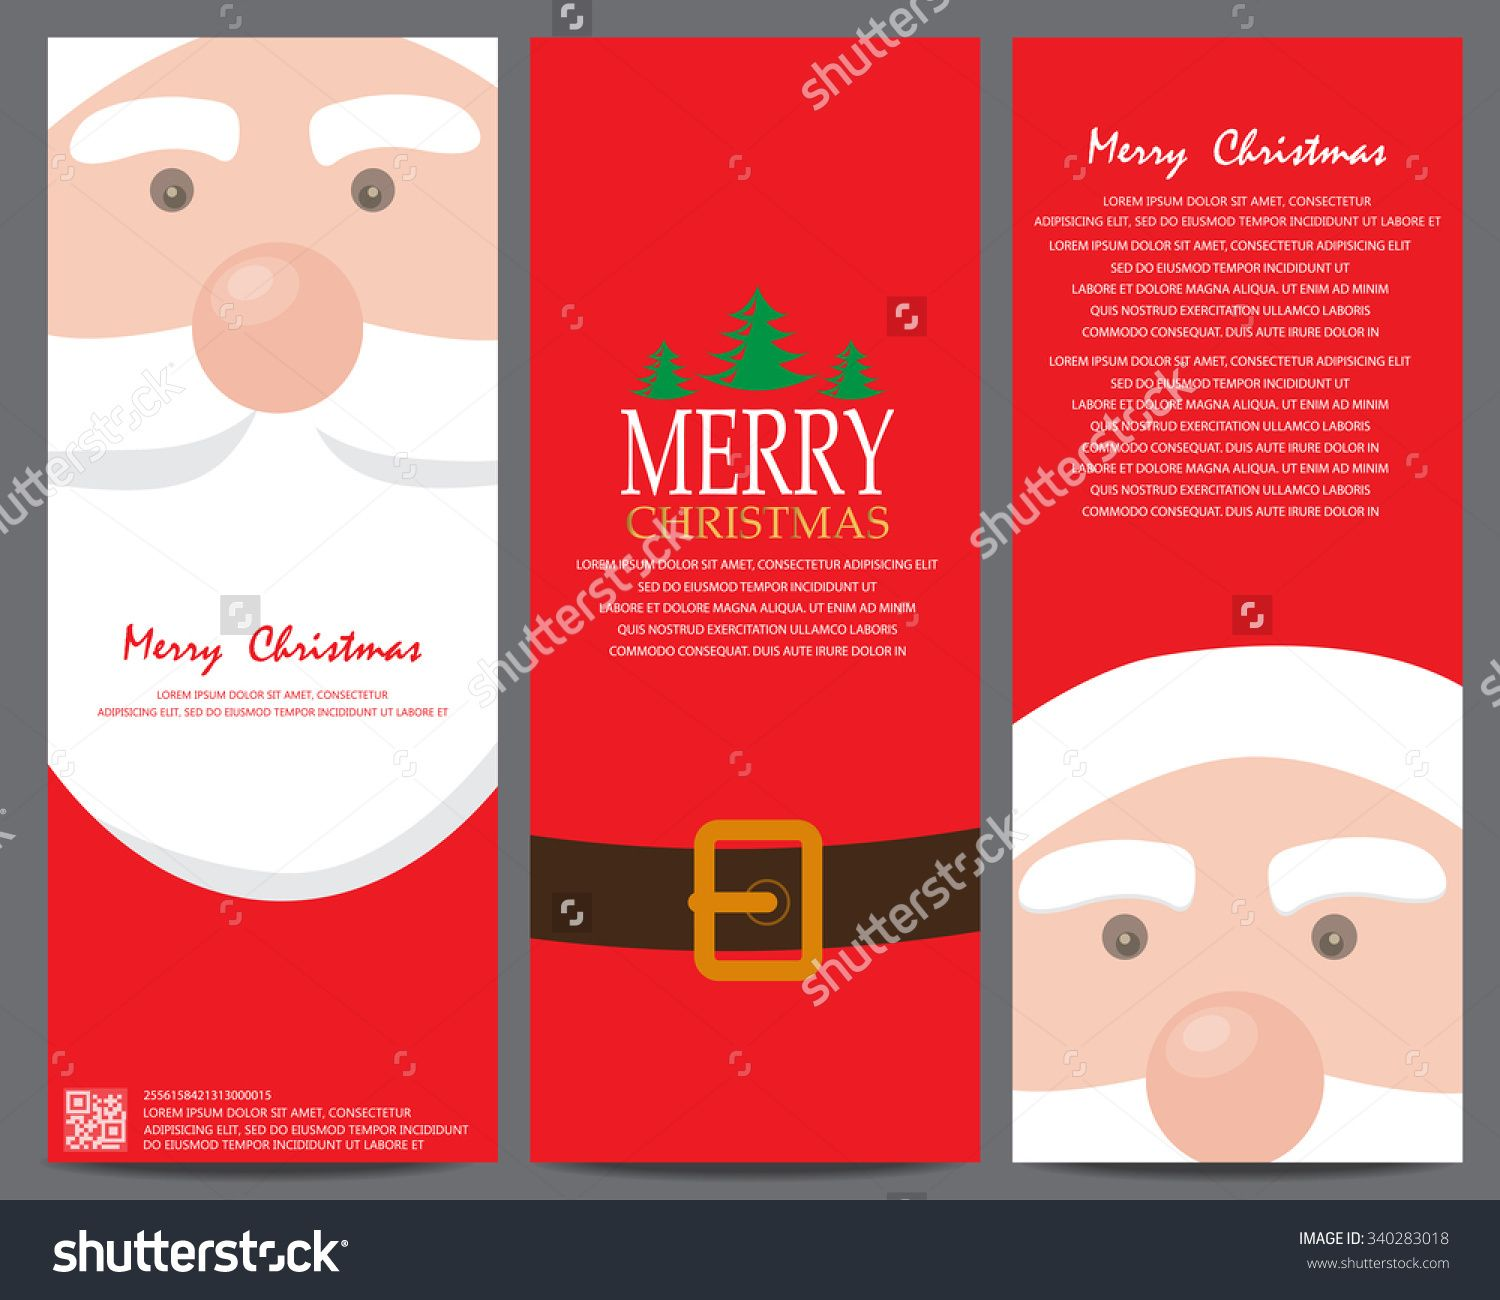 Christmas greeting or invitation card can be use for business christmas greeting or invitation card can be use for business shopping customer sale and kristyandbryce Image collections